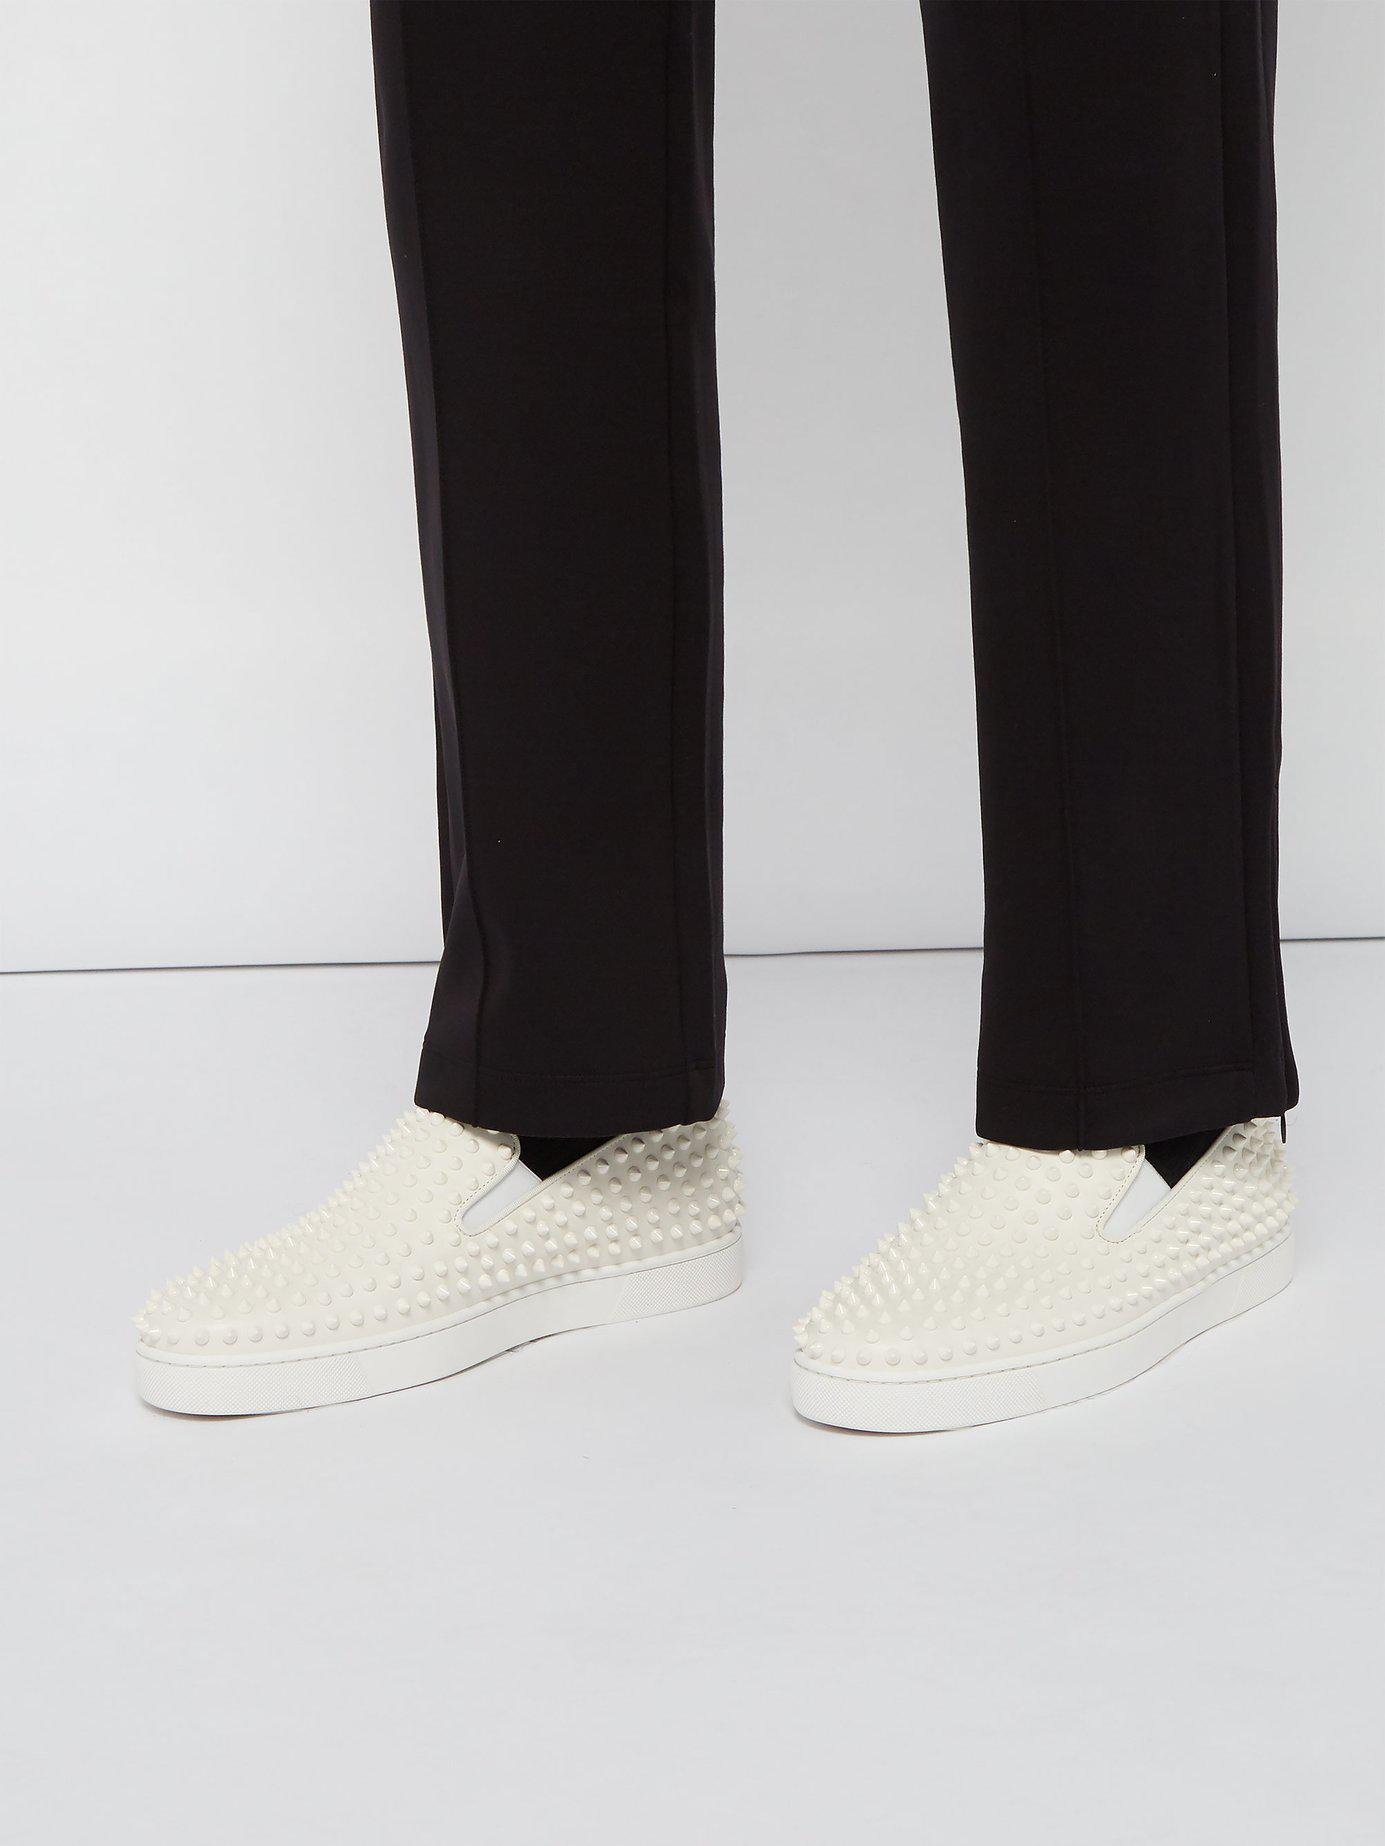 96bf7d269aaa Lyst - Christian Louboutin Roller Boat Spike Embellished Slip On Trainers  in White for Men